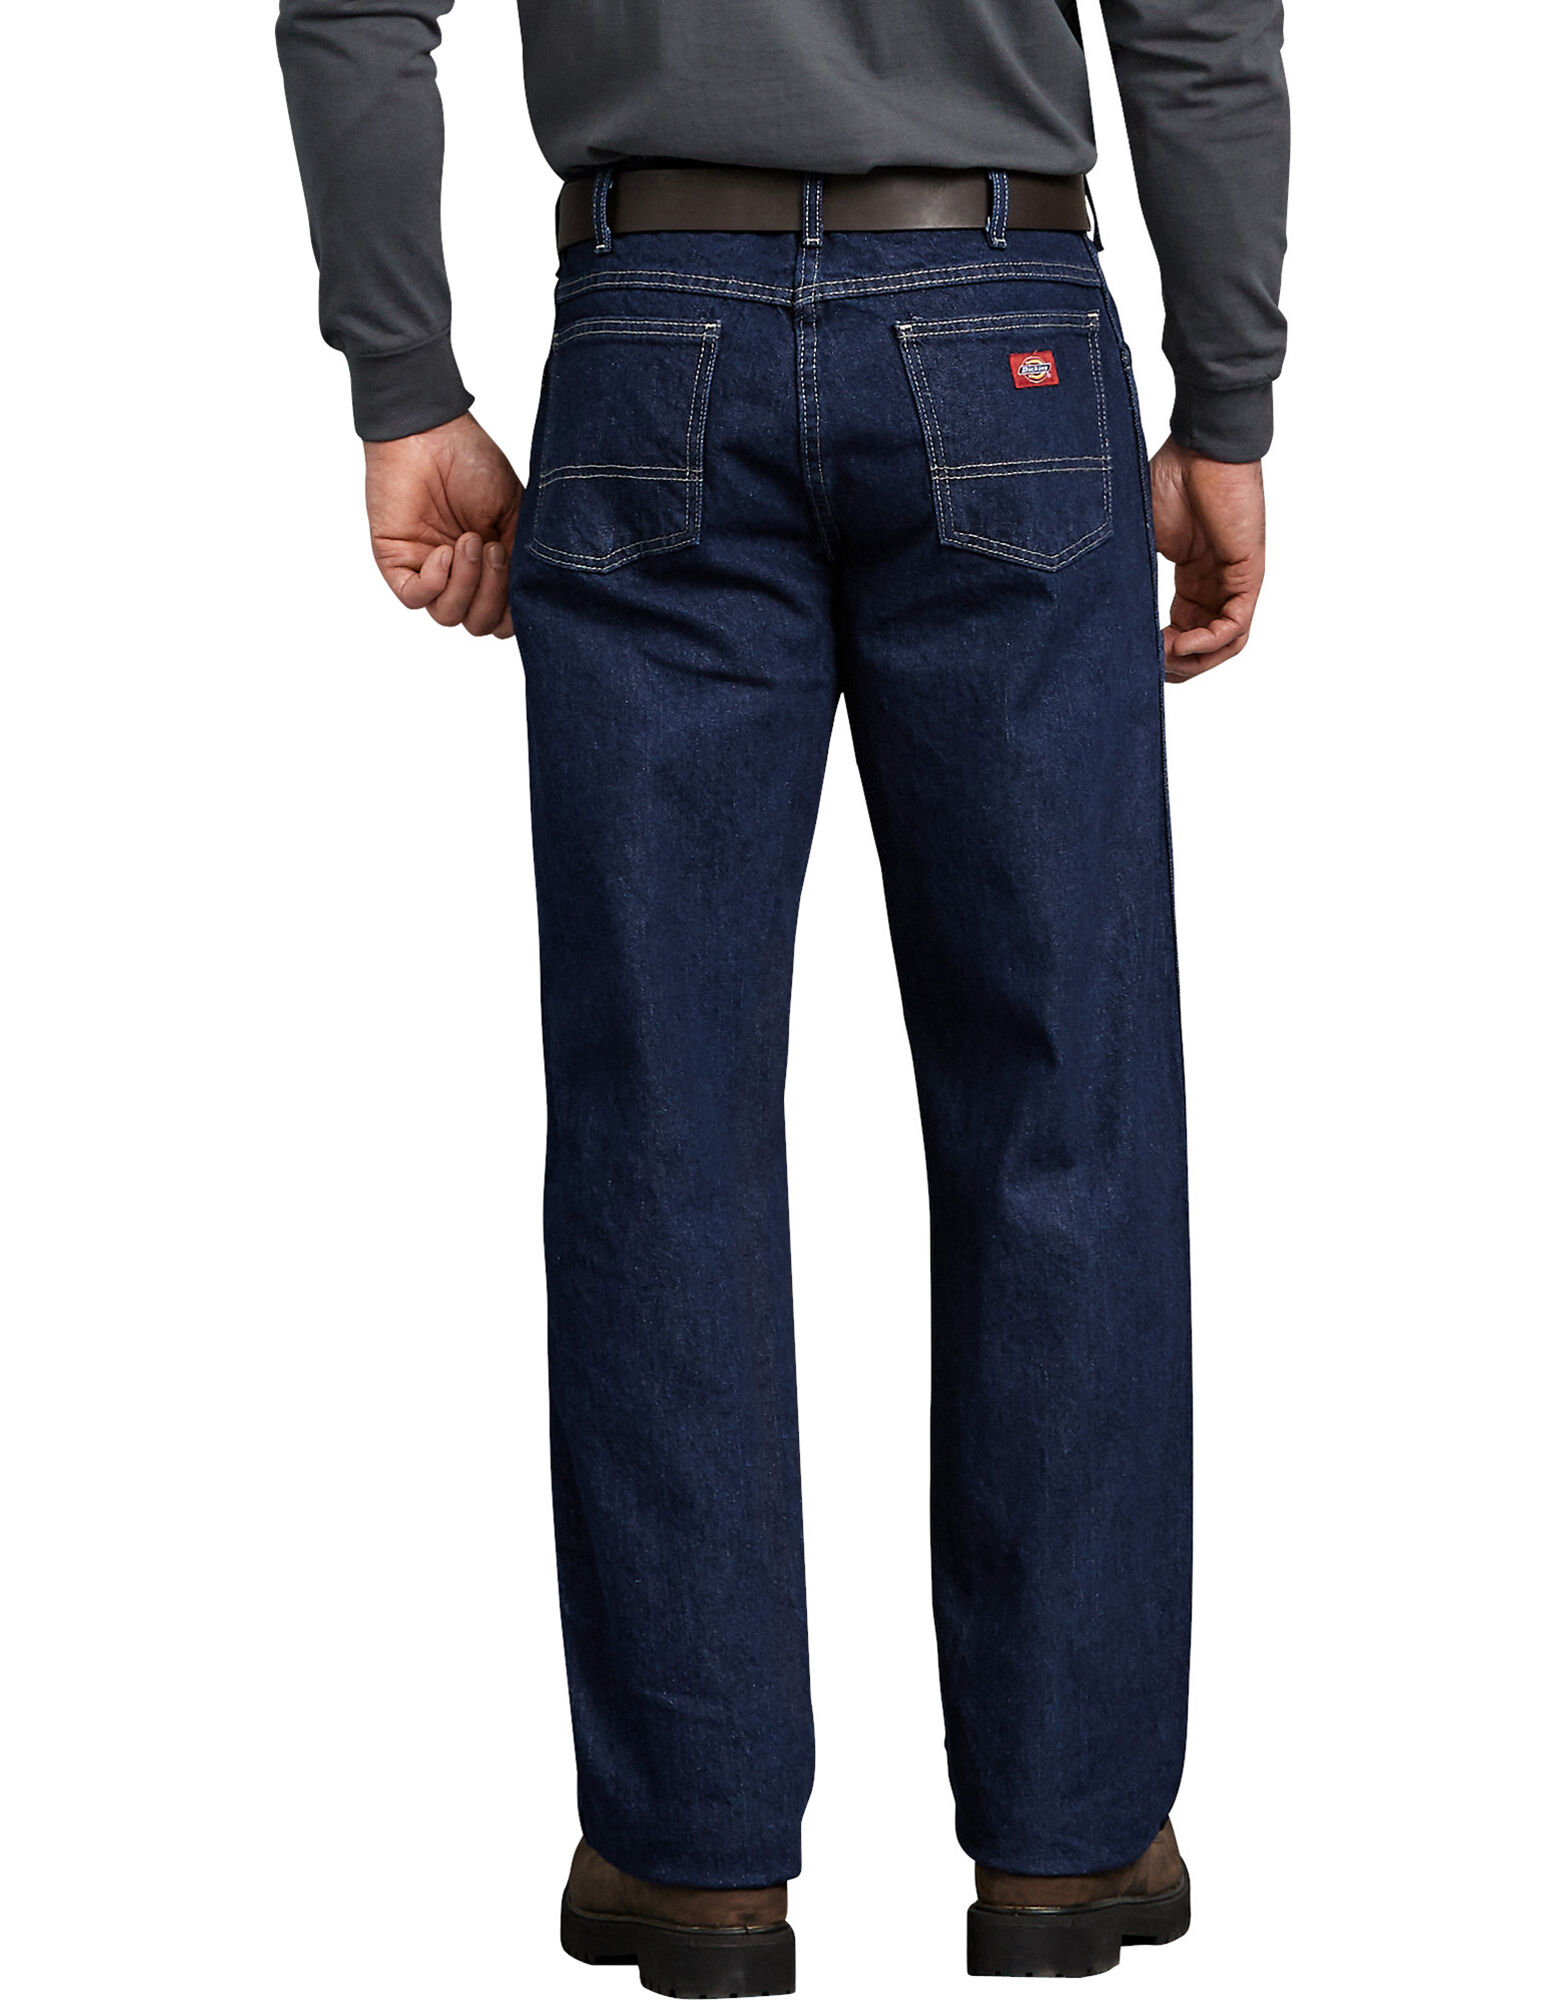 Enjoy free shipping and easy returns every day at Kohl's. Find great deals on Mens Relaxed Straight Jeans at Kohl's today!